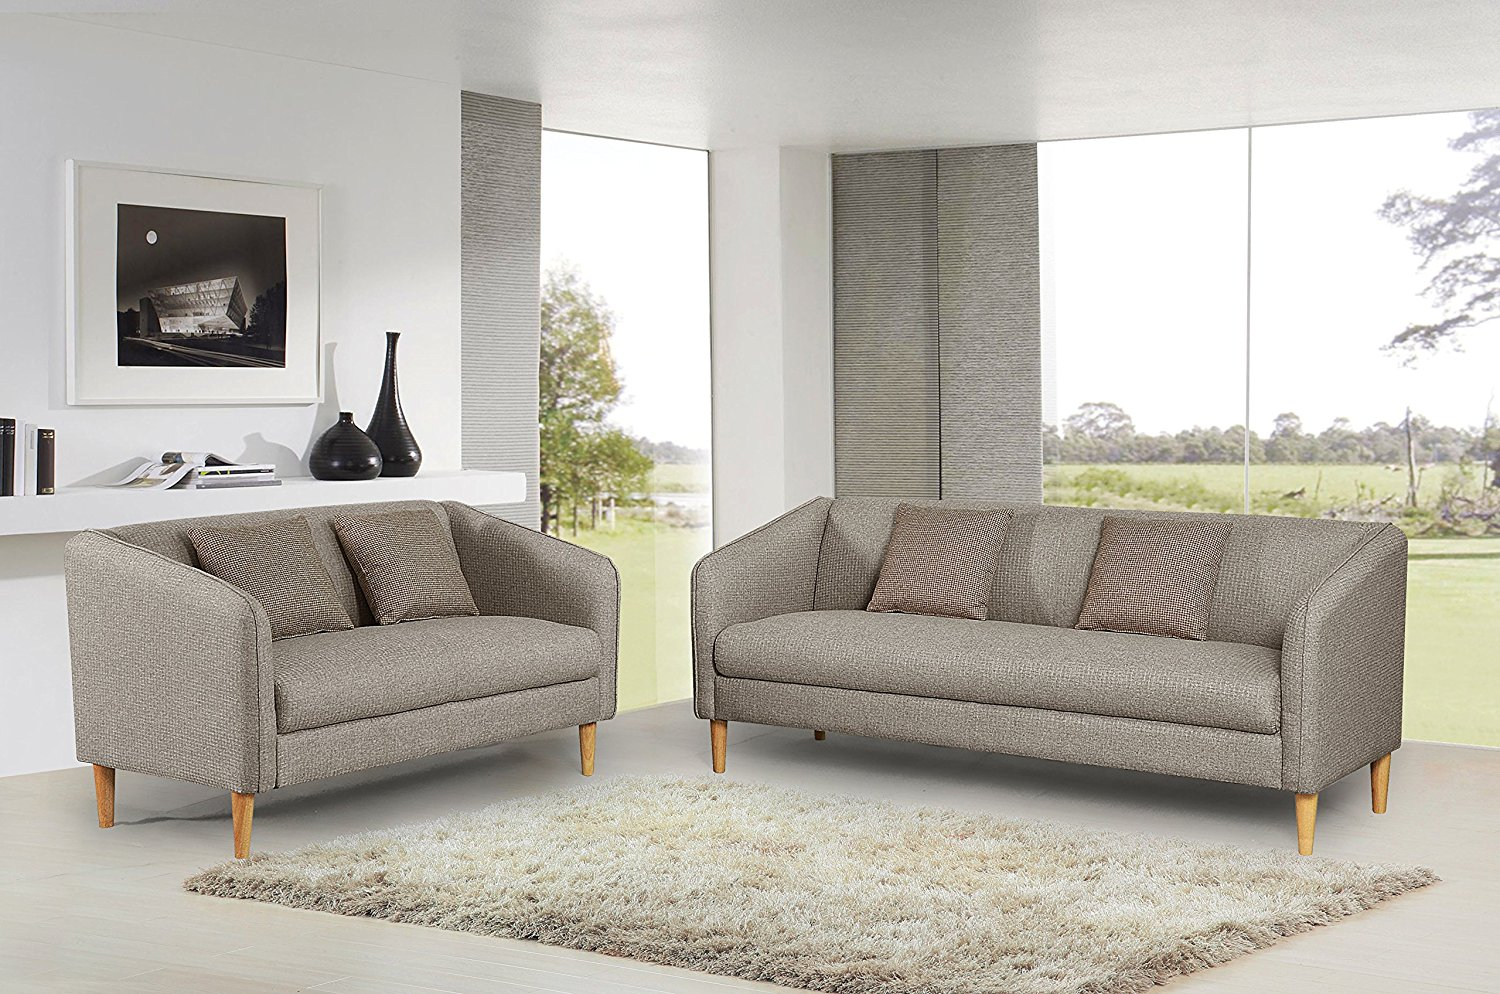 Container Furniture Direct Helton Collection 2 Piece Collection Modern Reversible Fabric Living Room Sofa Set, Beige